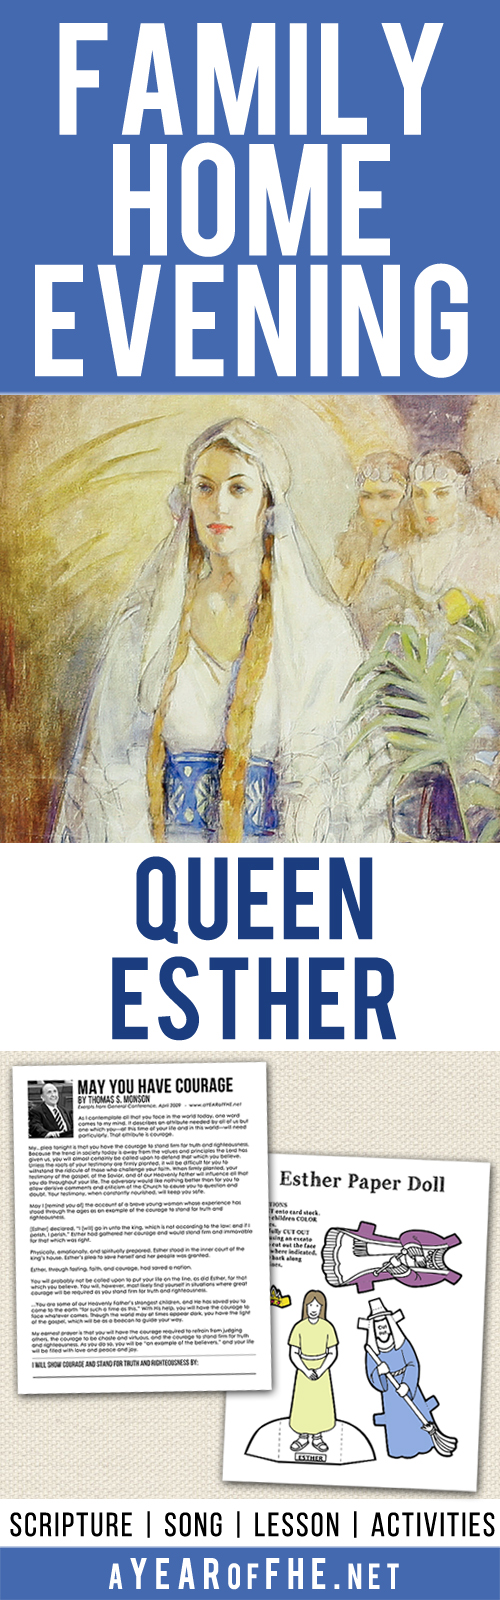 A Year of FHE: Year 01/Lesson 10: The Courage of Queen Esther